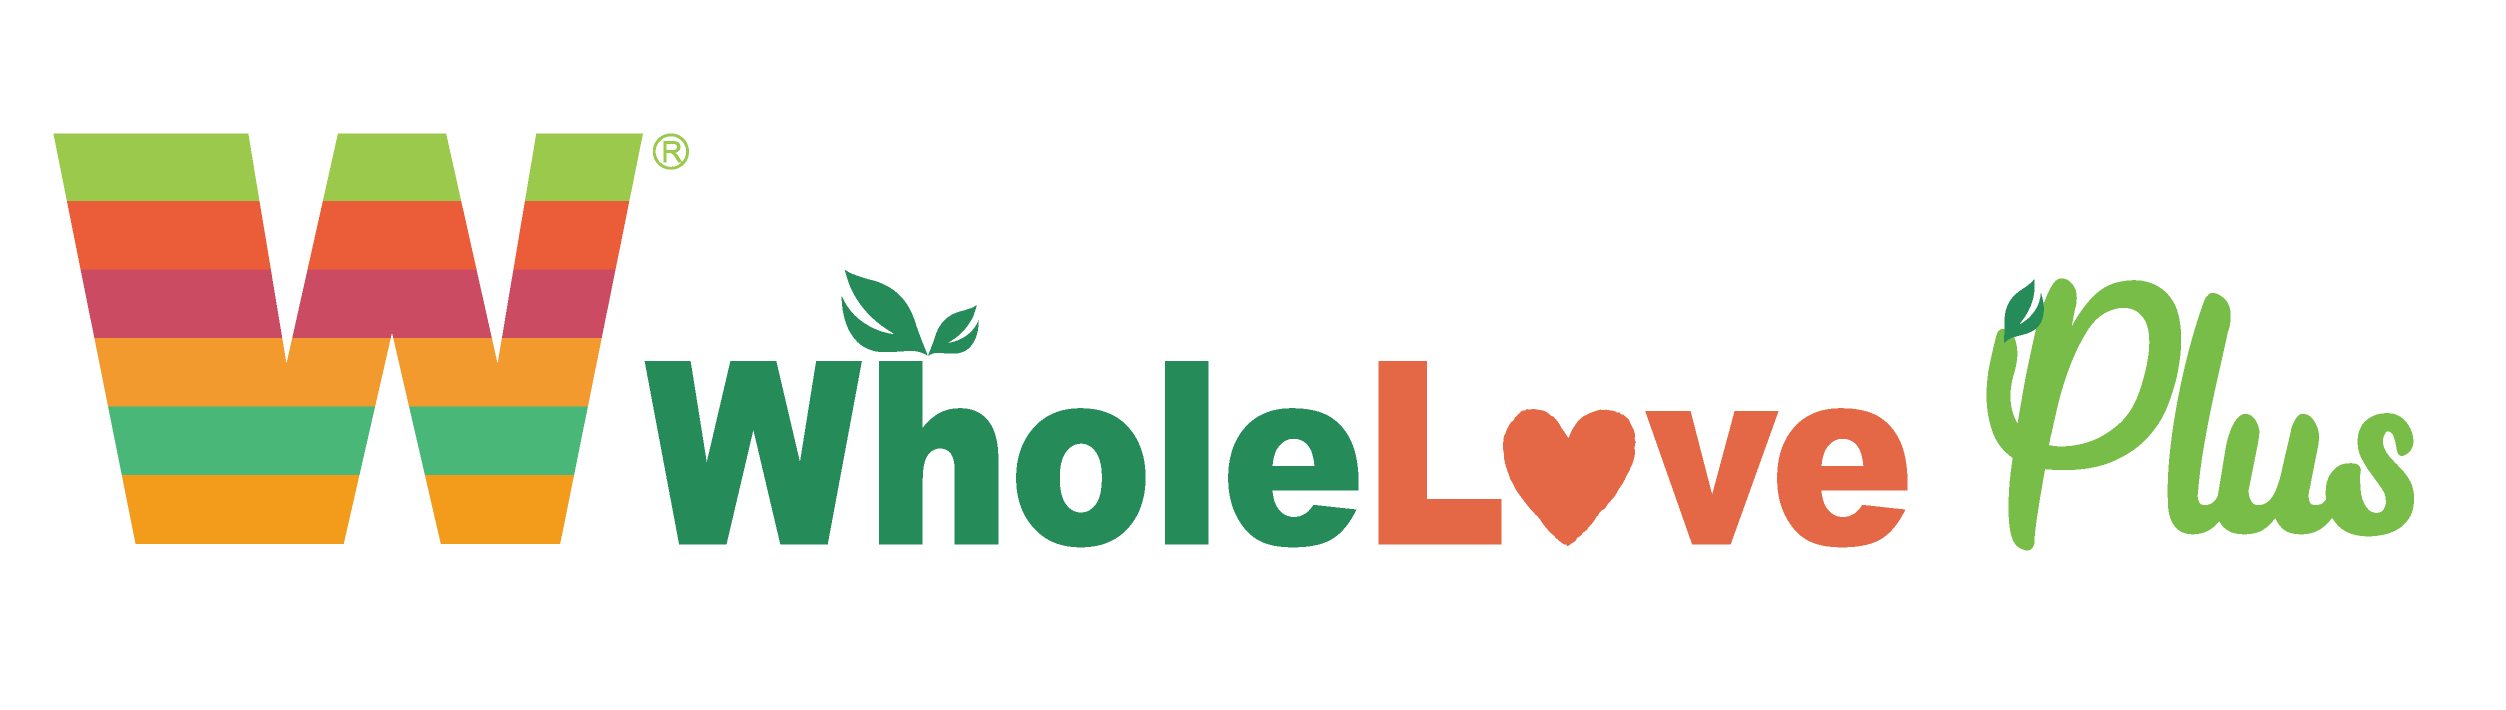 wholefood love 2019-logo-F